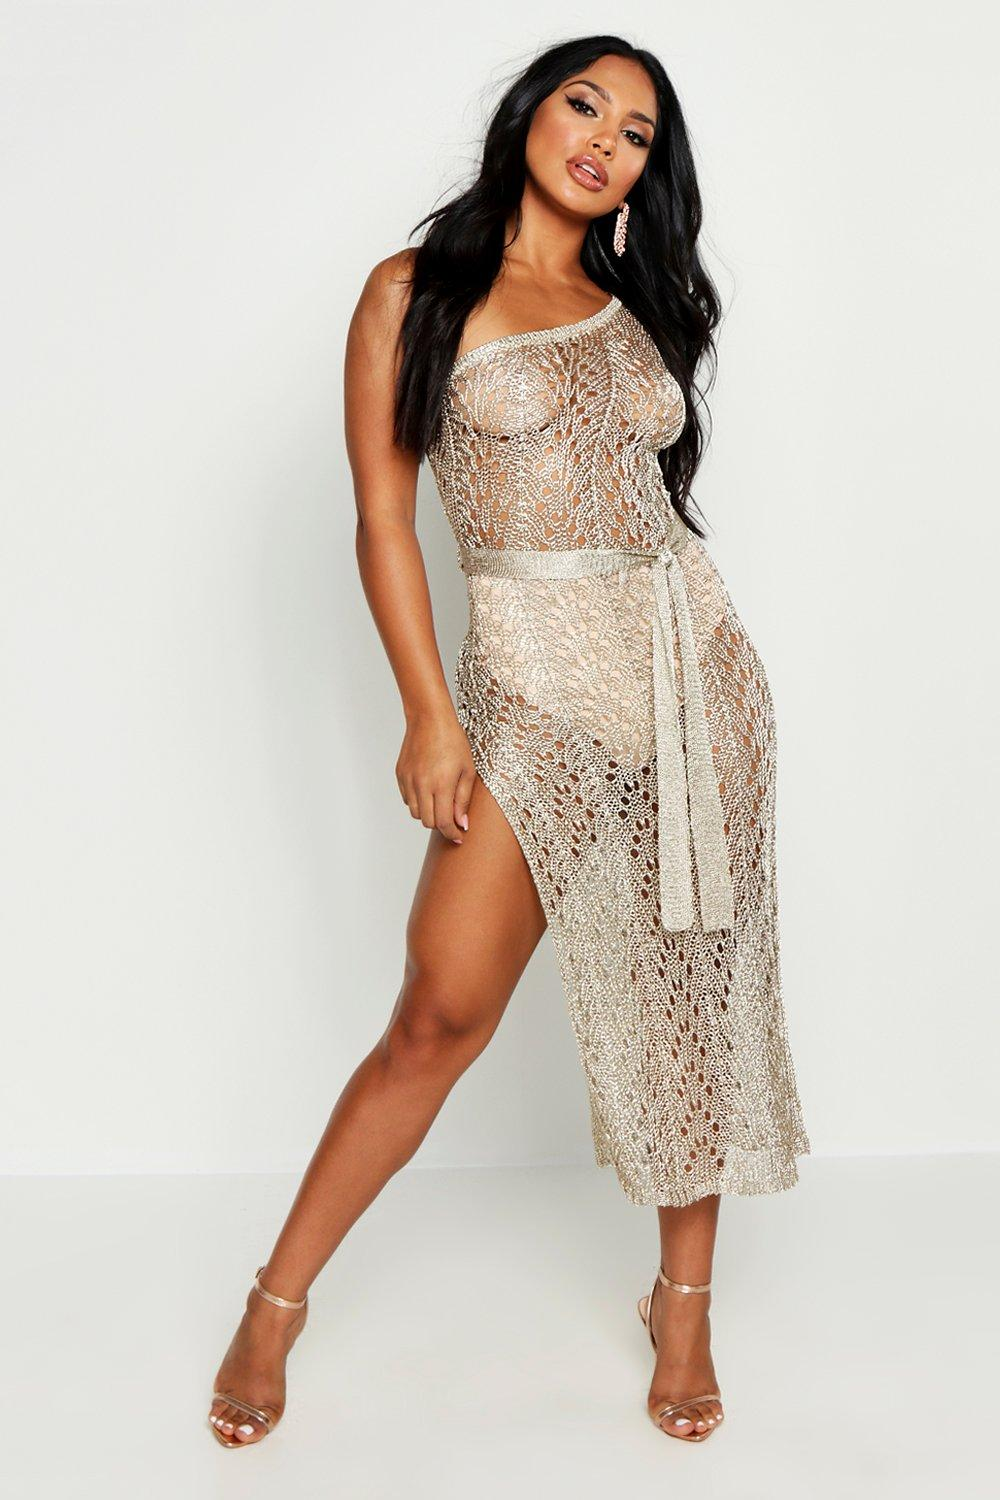 Boohoo Holiday Shop One Shoulder Metallic Knitted Dress